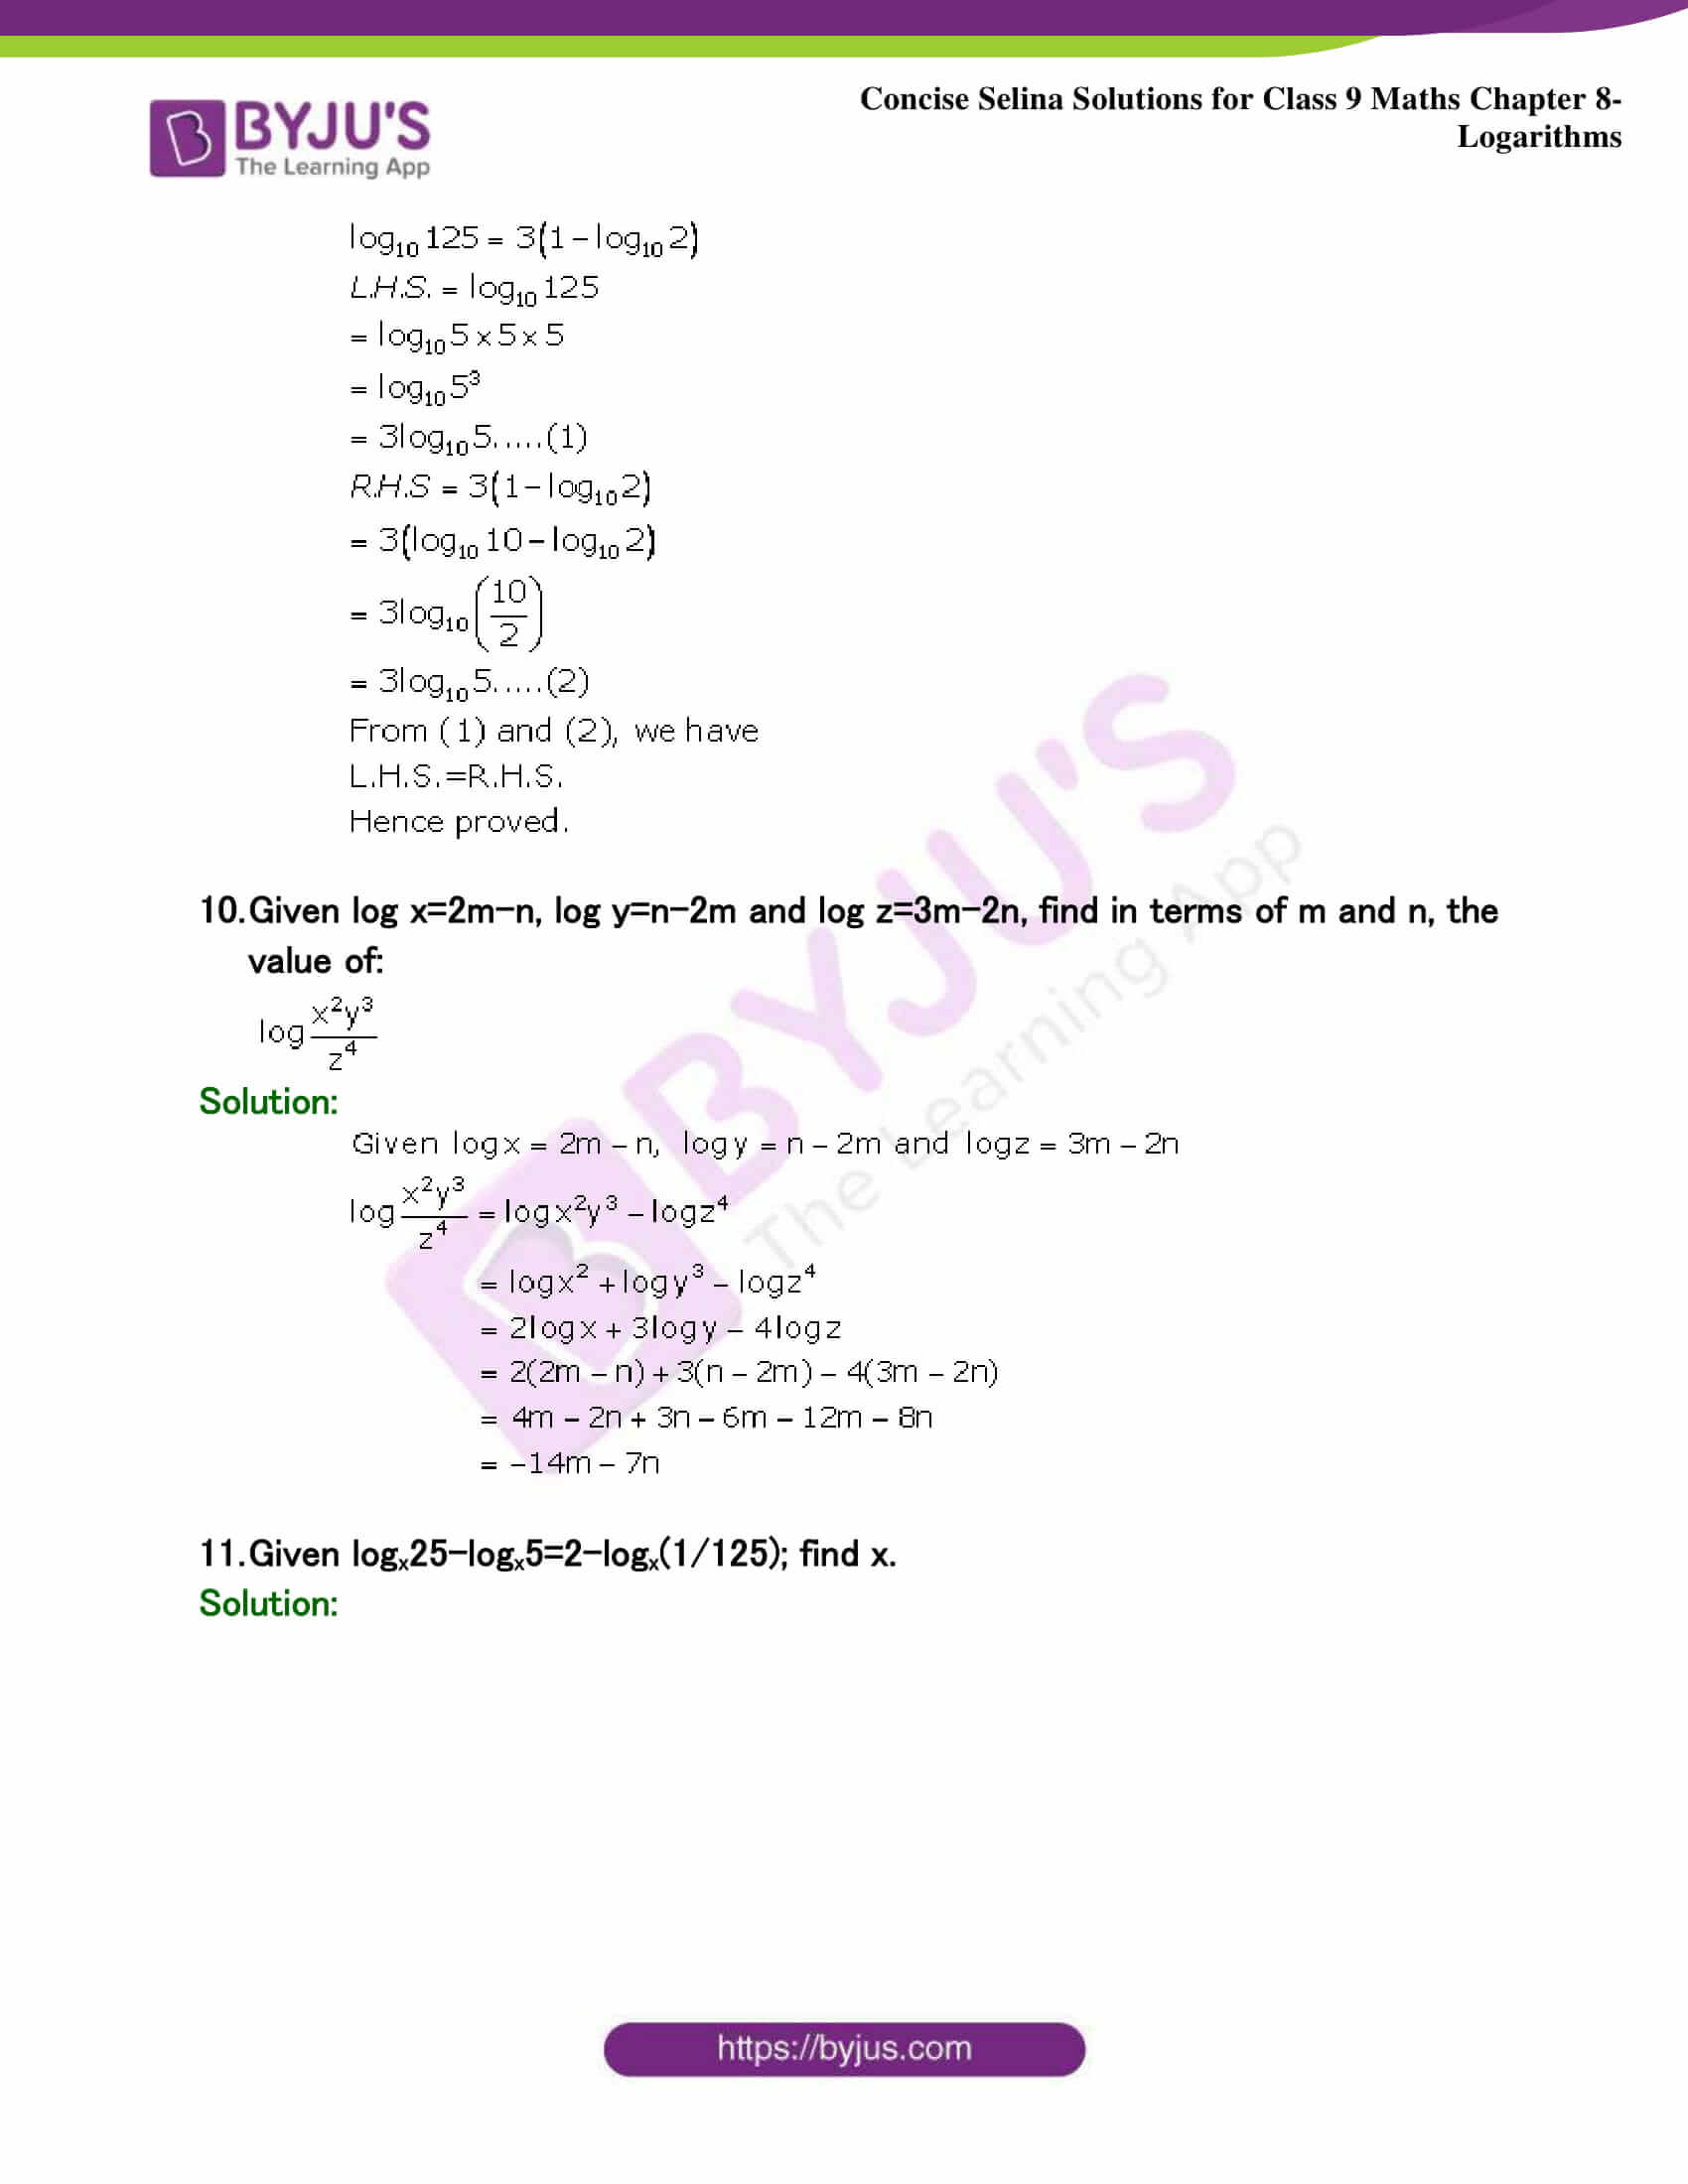 Selina Solutions Class 9 Maths Chapter 8 Logarithms part 36